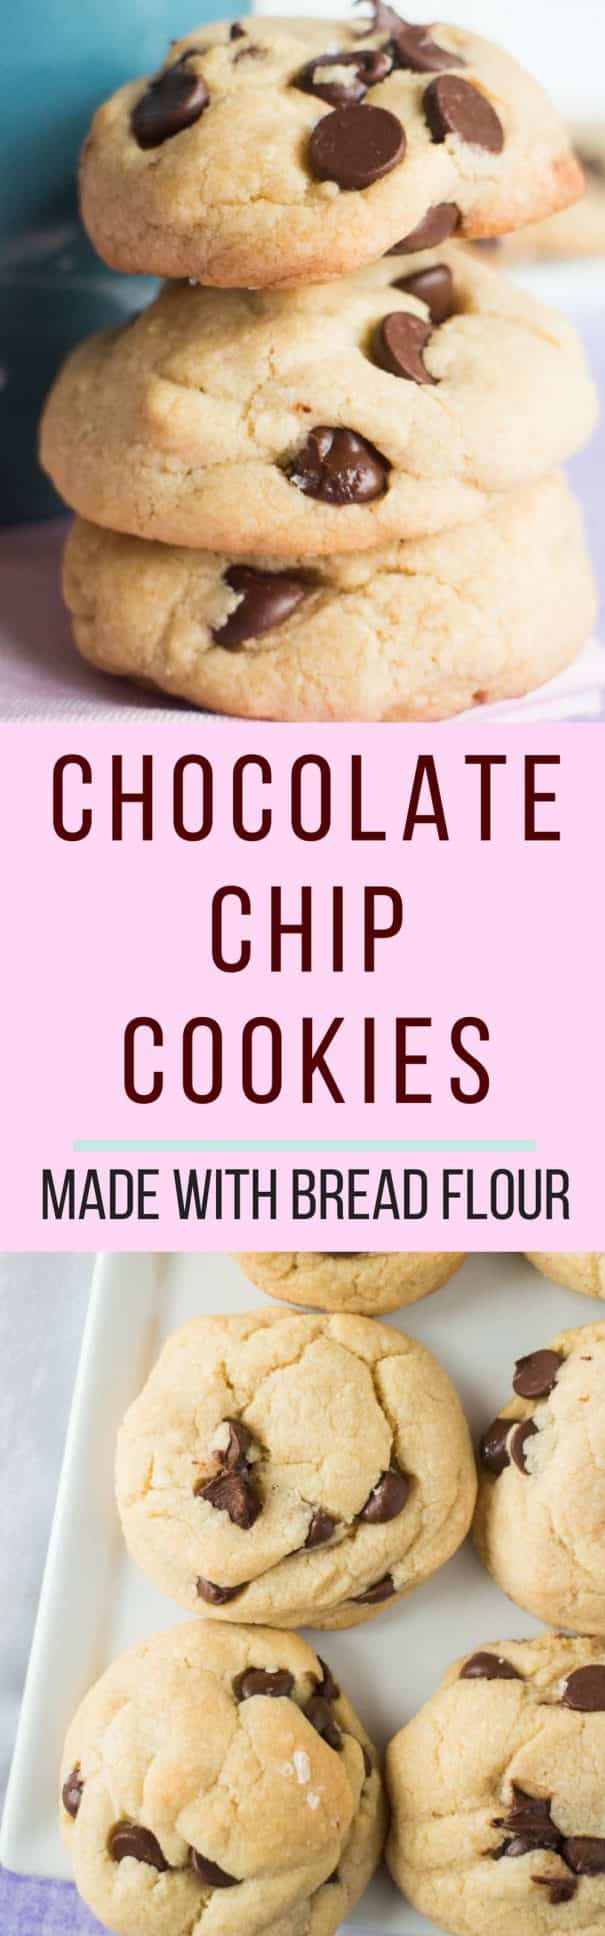 CHEWY Chocolate Chip Cookies Made With Bread Flour! My husband declares this the best chocolate chip cookie recipe!  This easy recipe makes 2 dozen homemade cookies.   Save this recipe - you're going to love it!